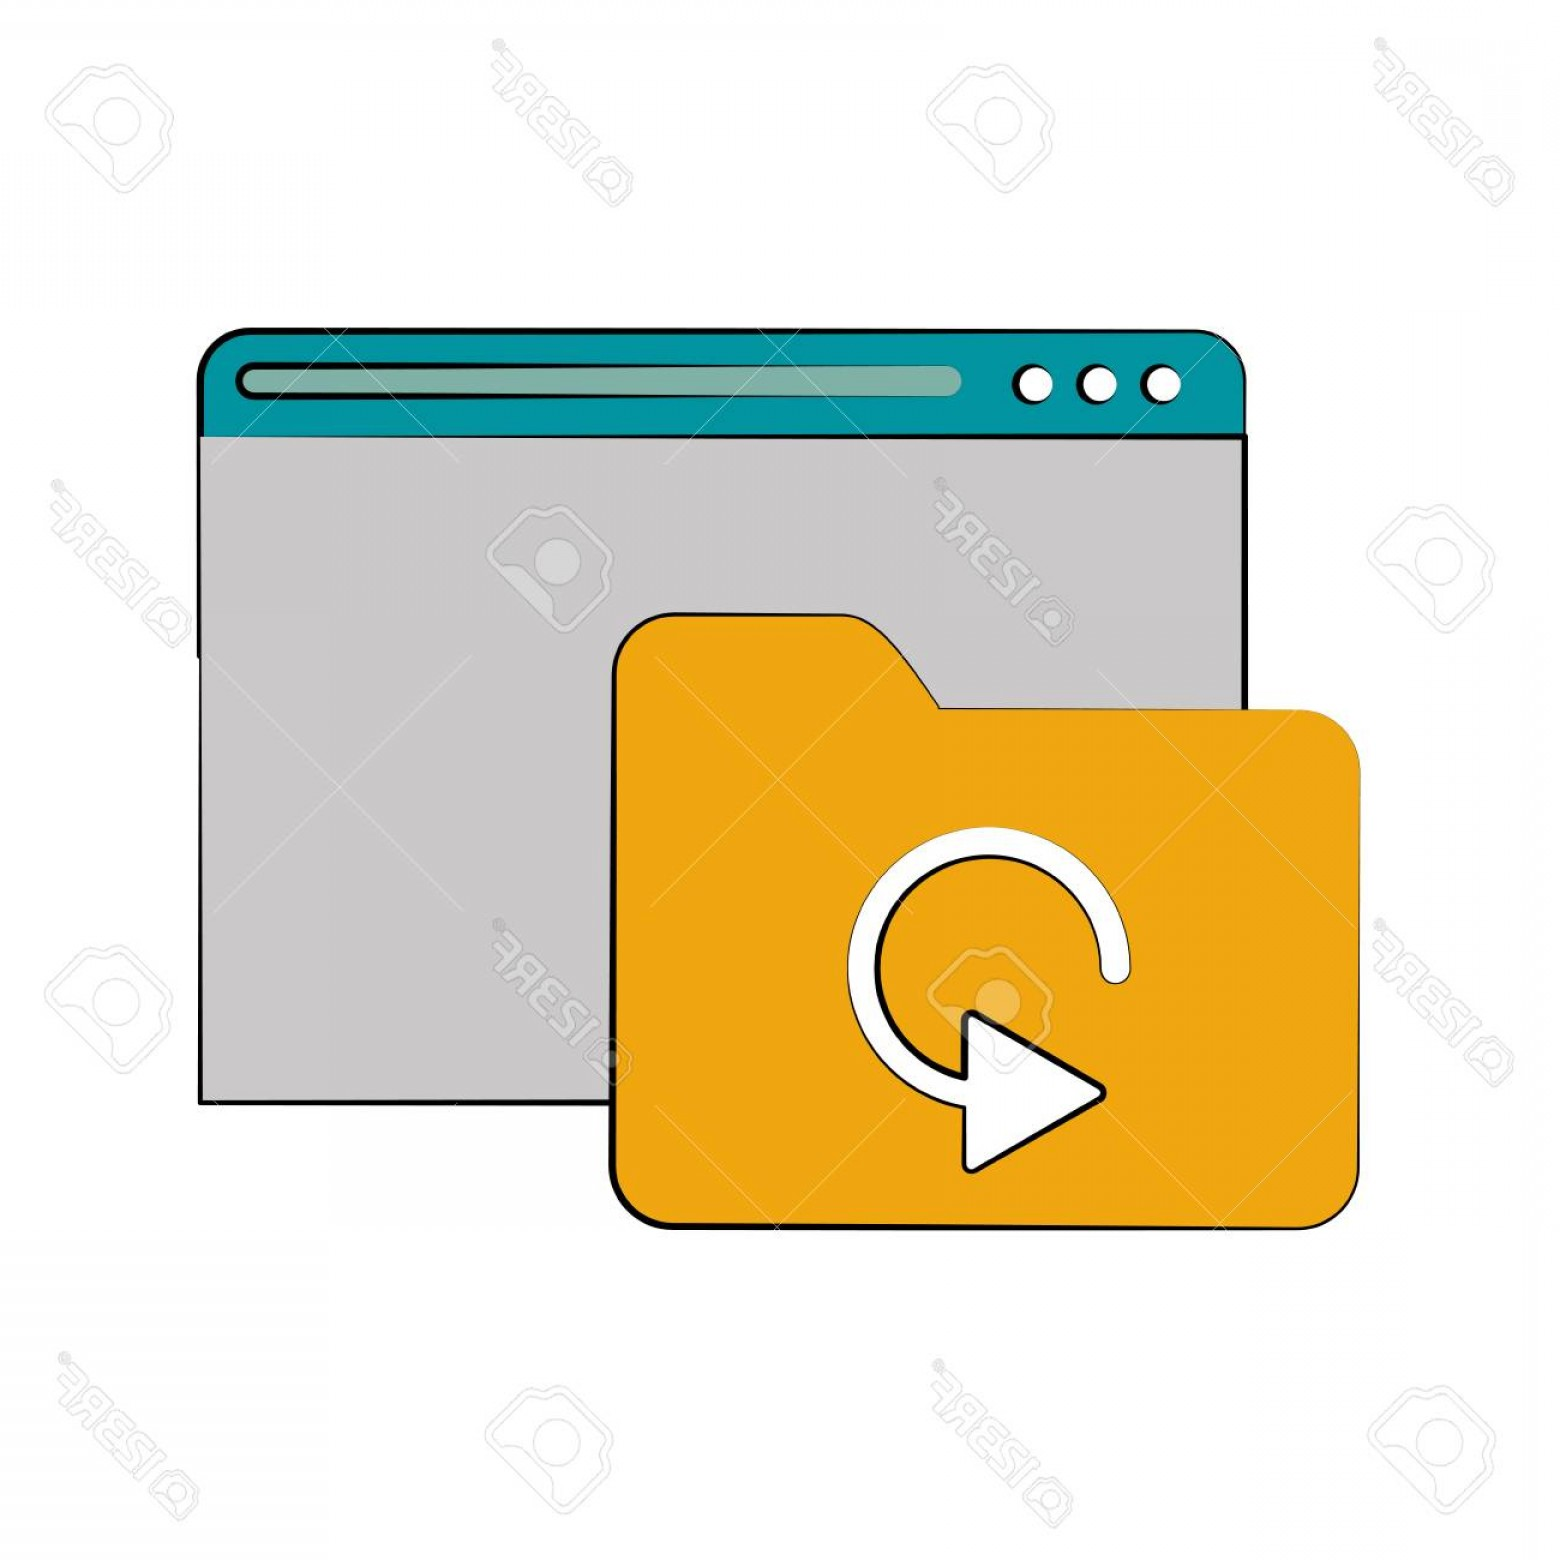 Folder Tab Vectors: Photostock Vector Tab Webpage Or Website With File Folder Icon Image Vector Illustration Design